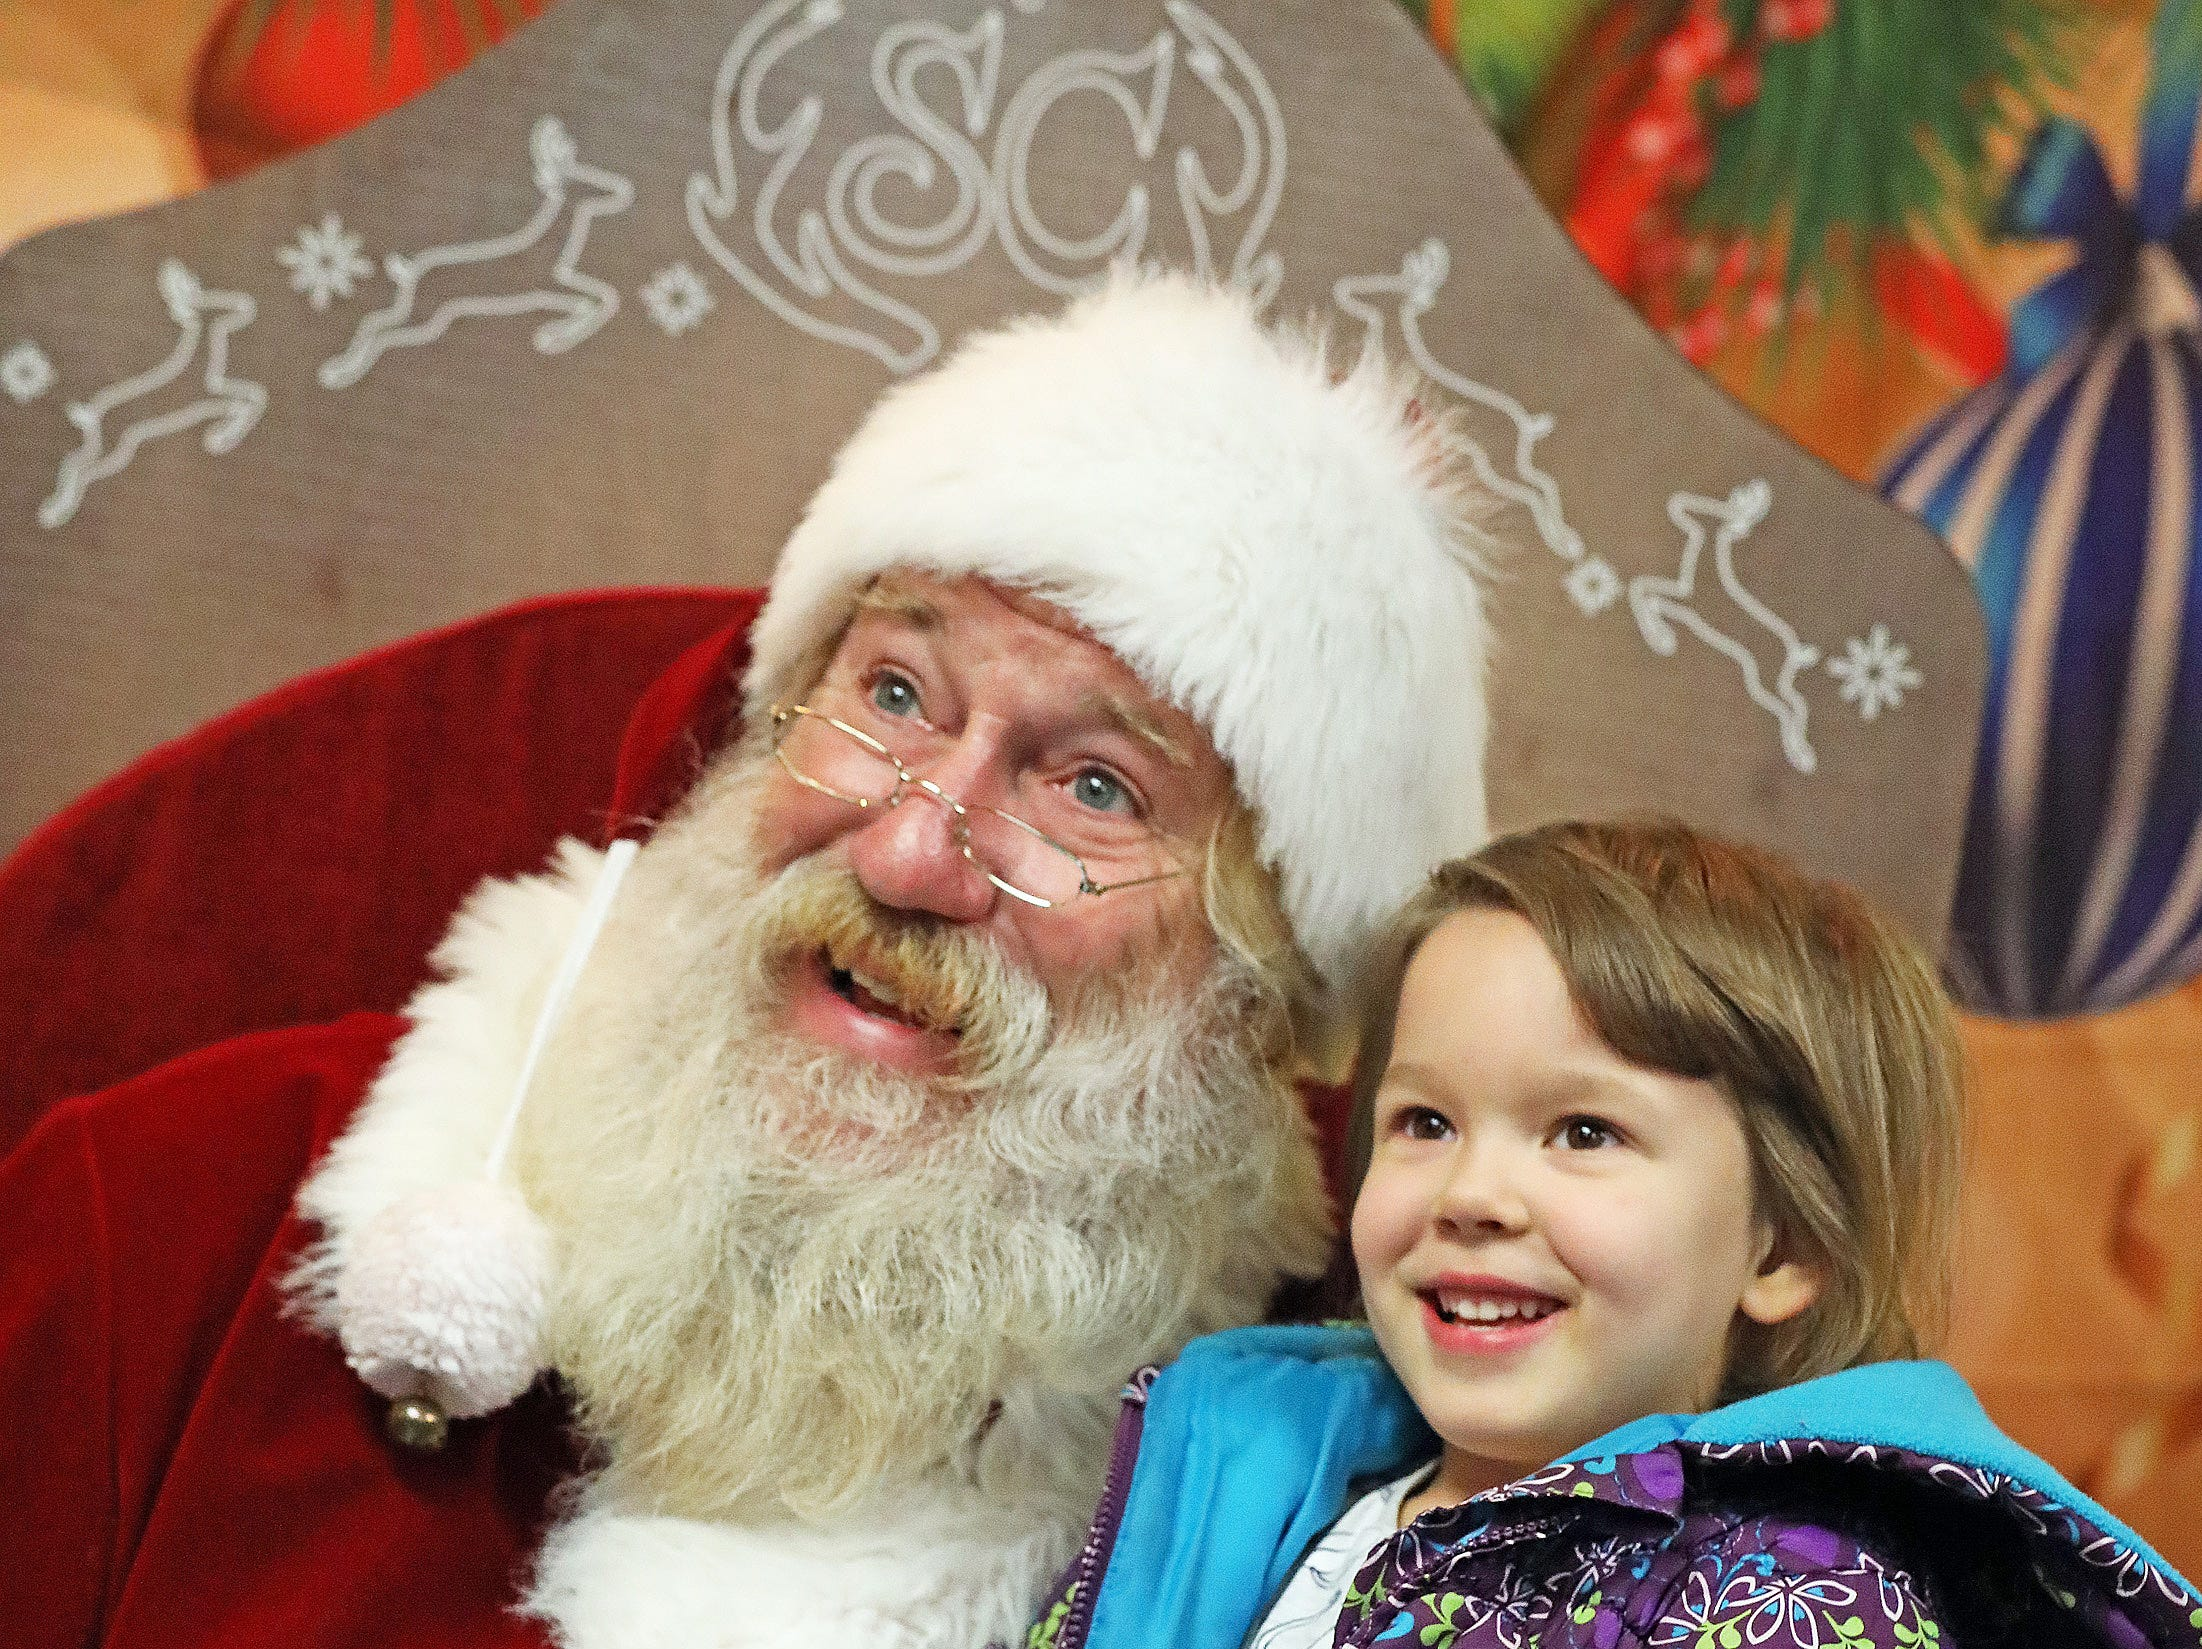 Santa and Norah Burrier, 5, of Urbandale smile as Burrier's dad takes her picture during UCAN's third annual Light Up Urbandale on Sunday, Dec. 2, 2018 at Lions Park in Urbandale. Holiday festivities included a visit from Santa, crafts, goodies, official tree lighting ceremony, live reindeer and entertainment. This event helps raise awareness and support for the Urbandale Community Action Network Holiday Helping Hands Programs for families, kids, teens and seniors in need.